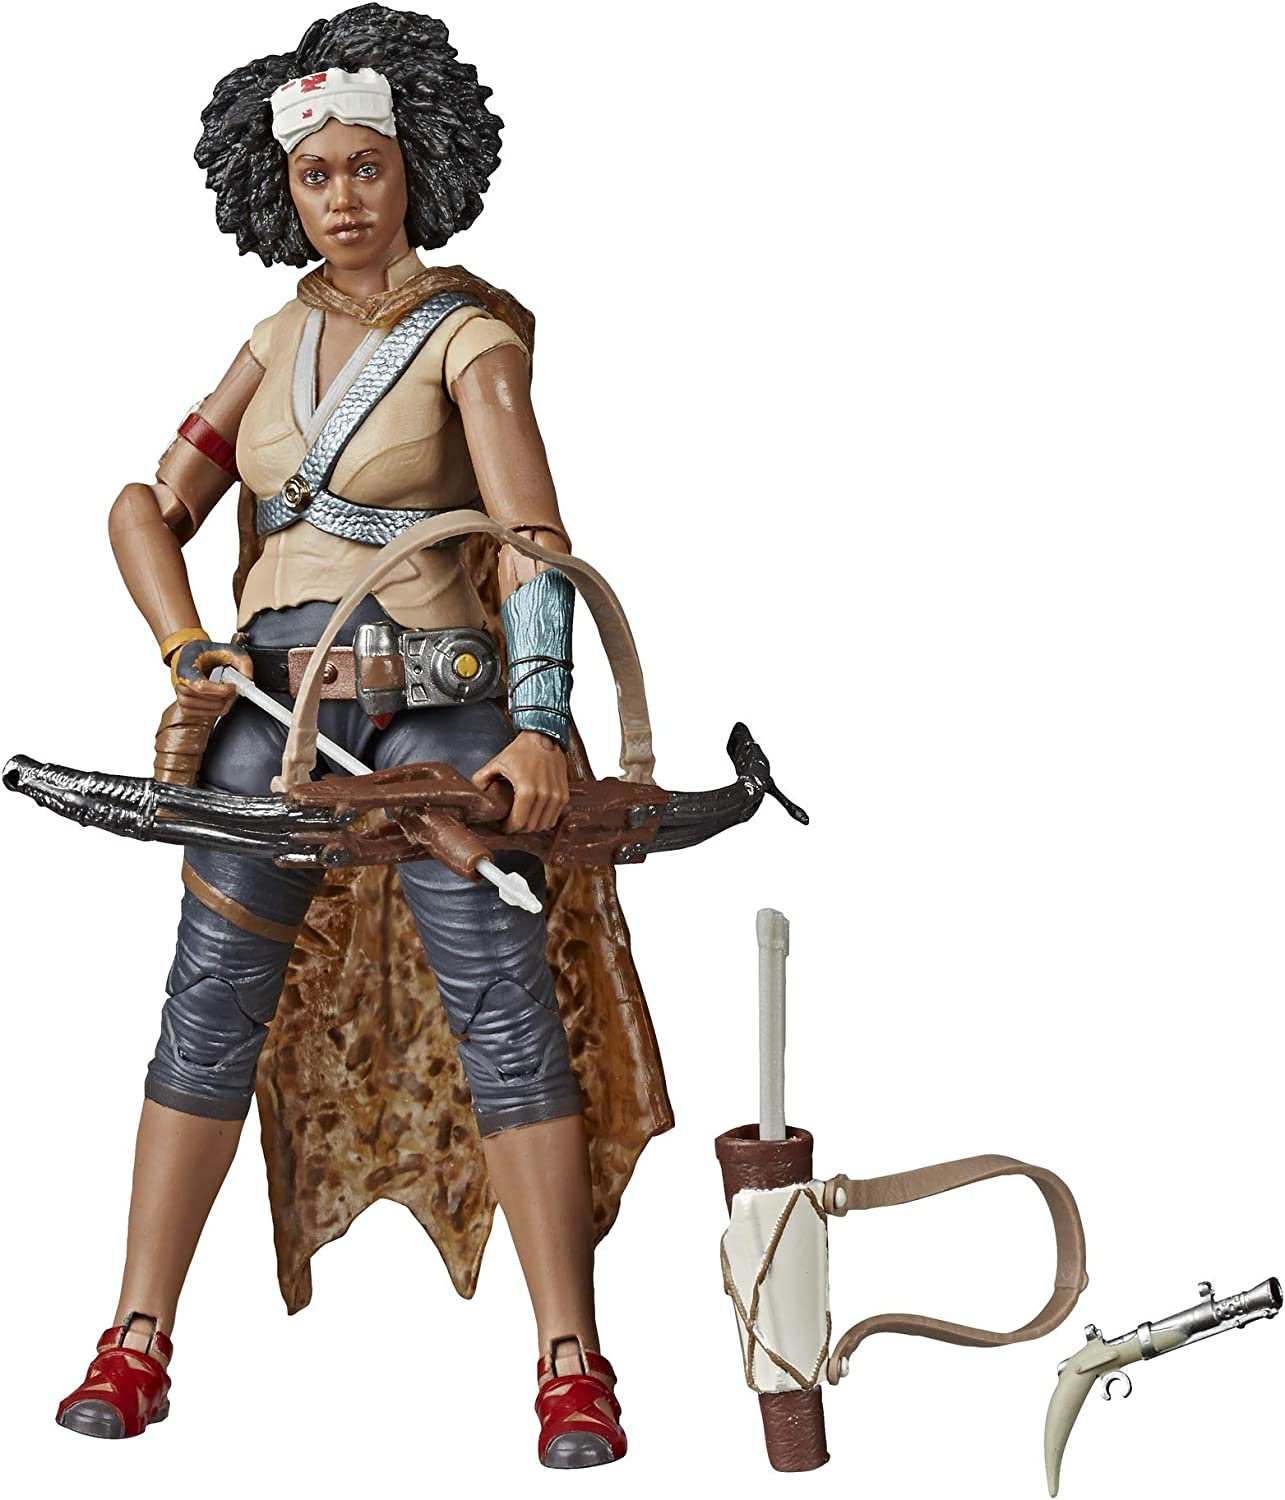 Toys for Kids Ages 4 /& Up Star Wars The Black Series Jannah Toy 6 Scale The Rise of Skywalker Collectible Action Figure